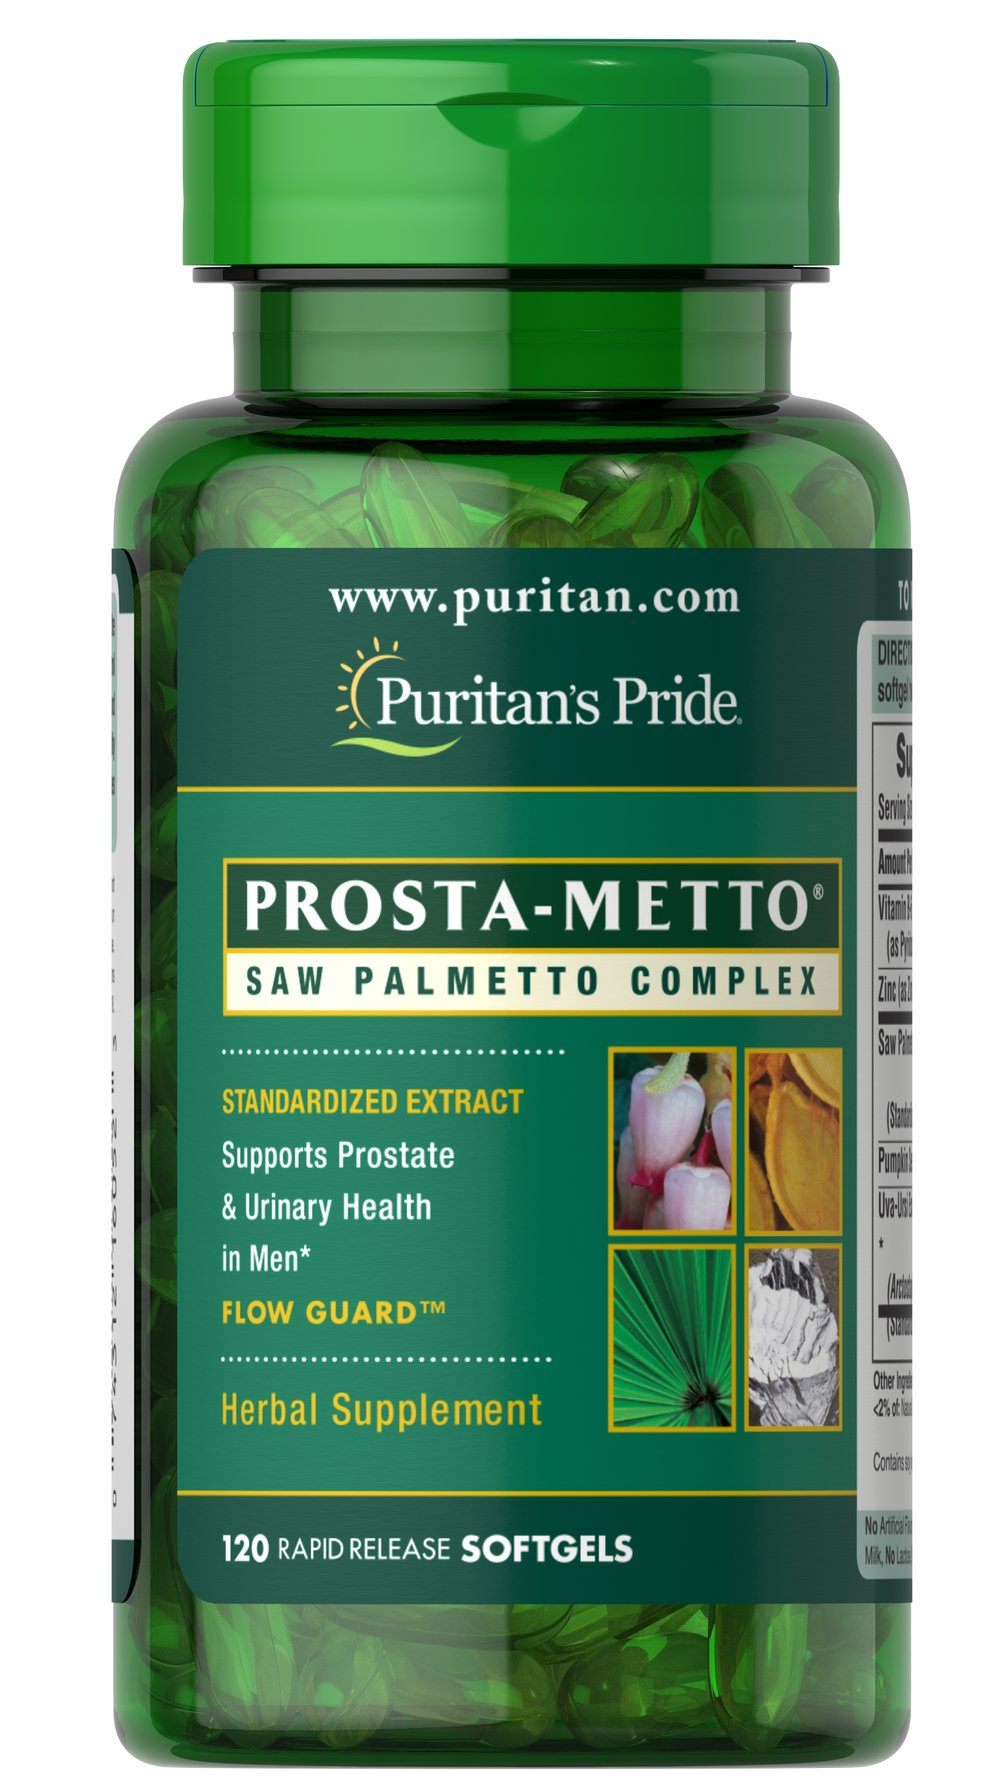 Prosta-Metto® Saw Palmetto Complex For Men <p>Extra Strength Prosta-Metto® softgels deliver 160 mg of standardized Saw Palmetto to support prostate and urinary health in men.** Saw Palmetto is an extract derived from the berry of the Saw Palmetto tree and is the leading herb for men's health.** This formulation also includes Pumpkin Seed Oil and Uva-Ursi, traditional ingredients for men's health, plus Zinc for the immune system.** </p> 120 Softgels  $24.99